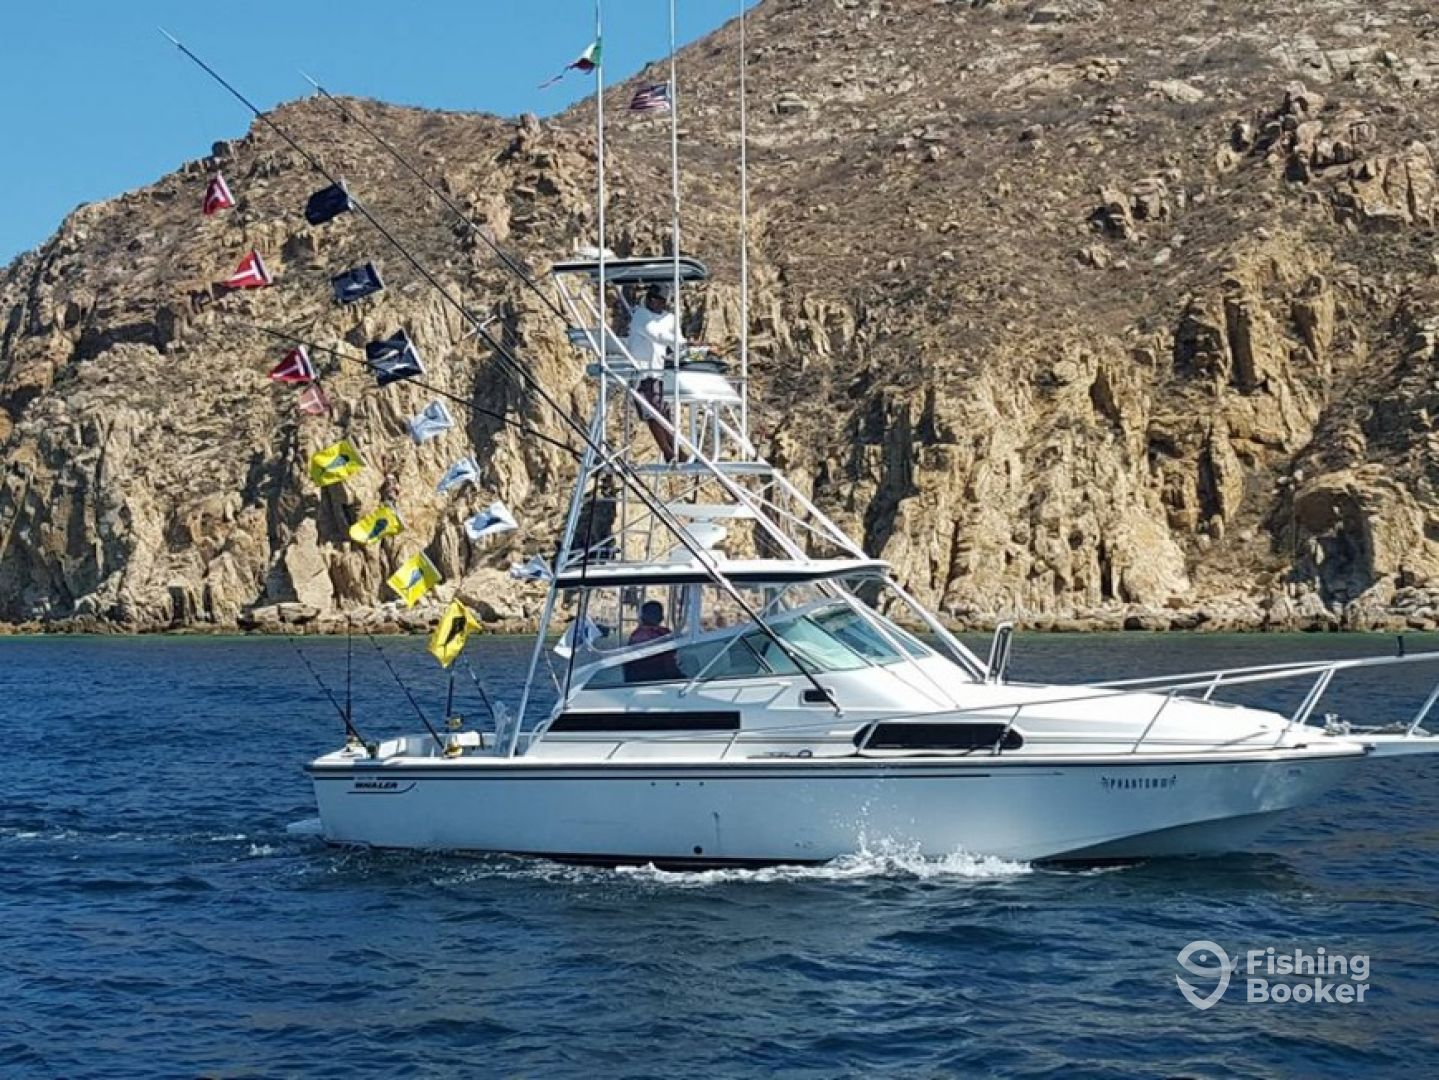 Phantom fishing cabo phantom iii cabo san lucas mexico for Fishing cabo san lucas